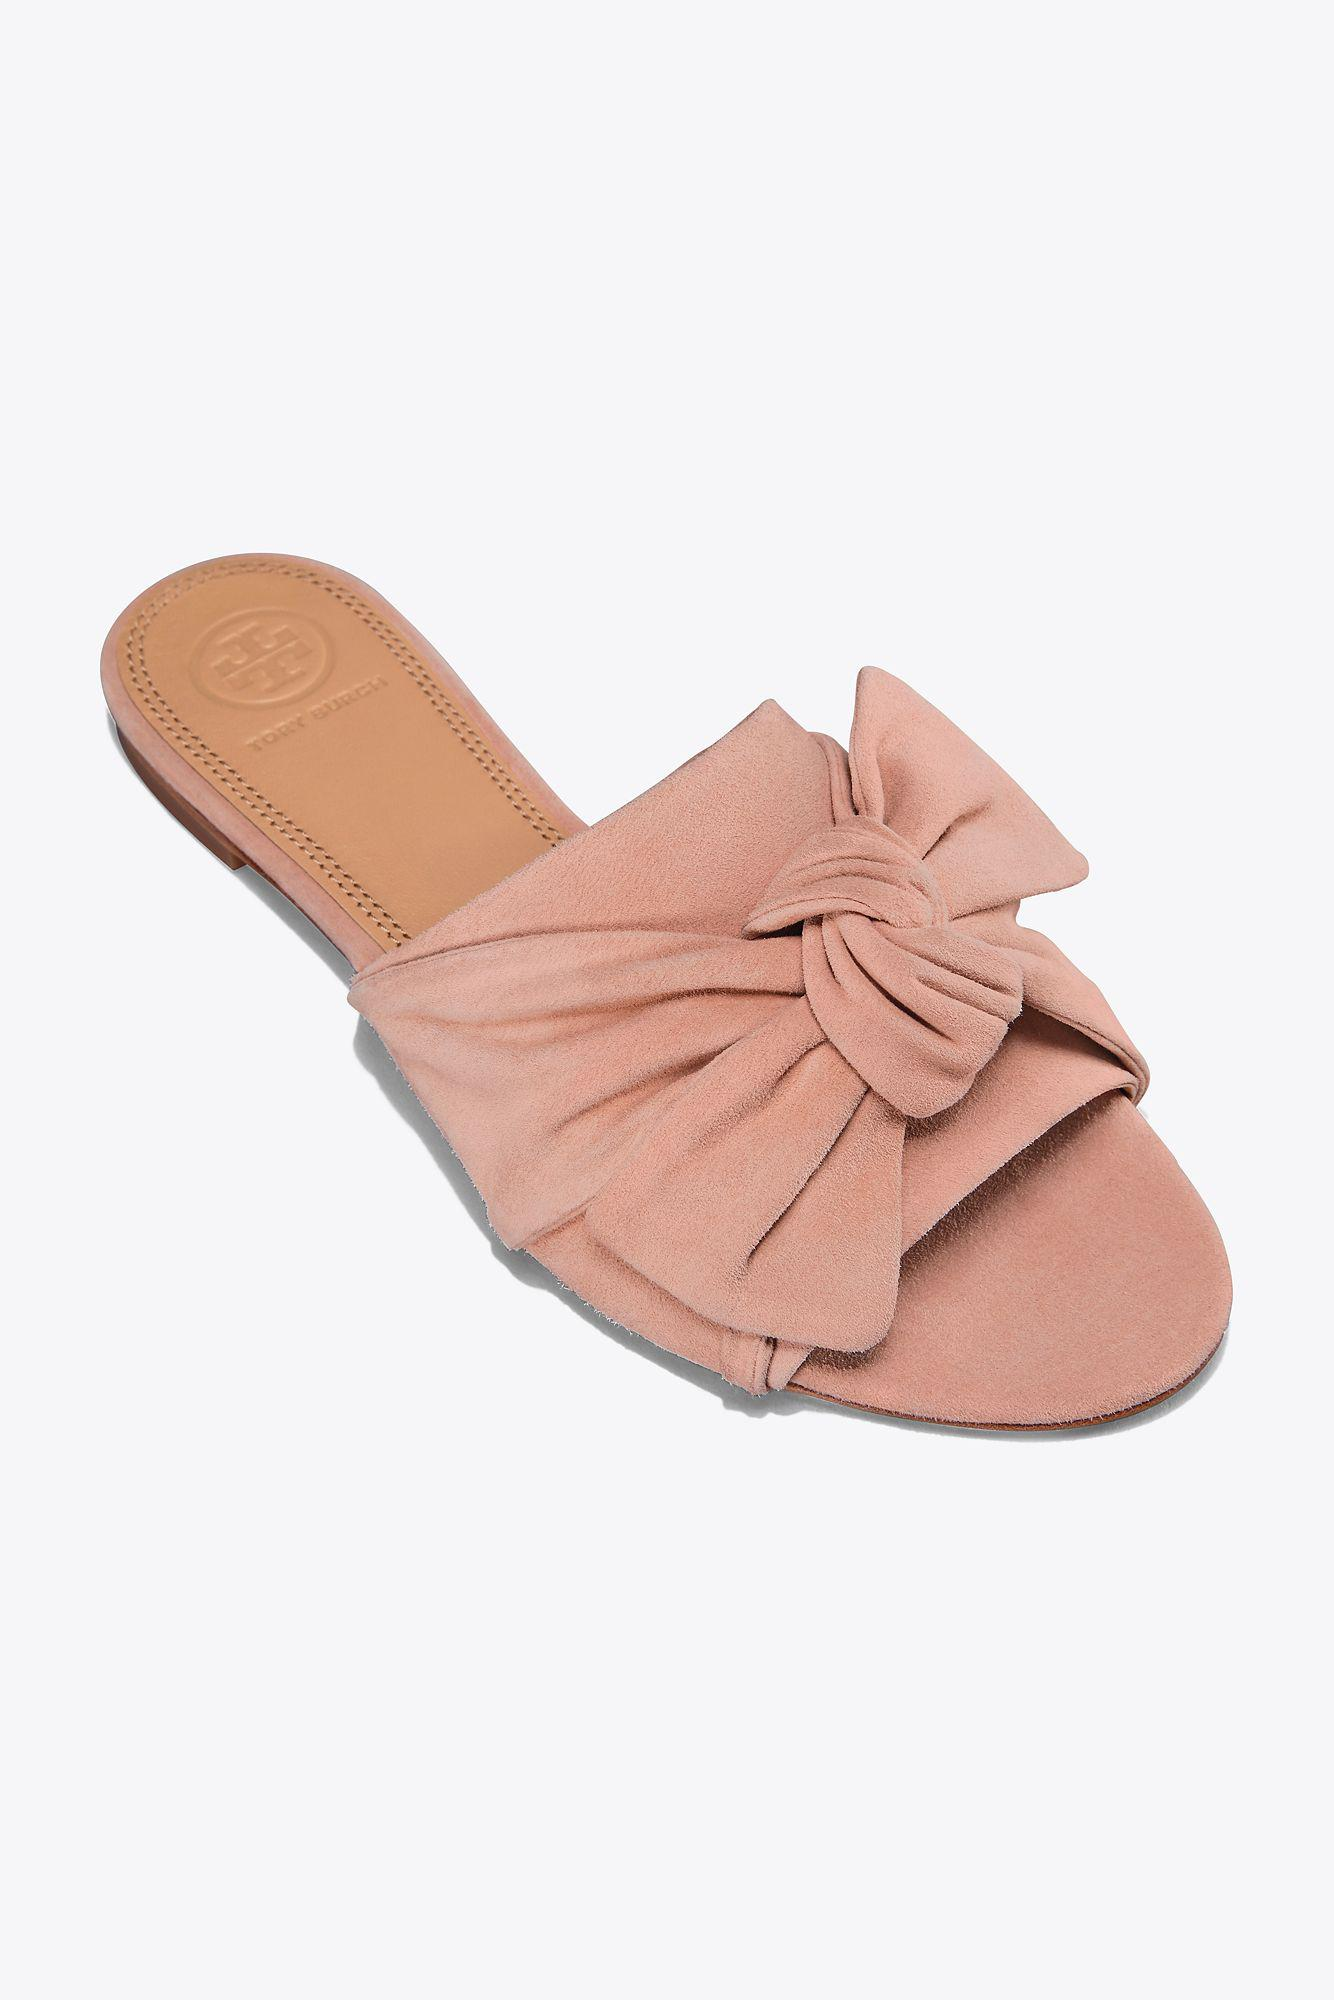 Tory Burch Leather Annabelle Bow Slide